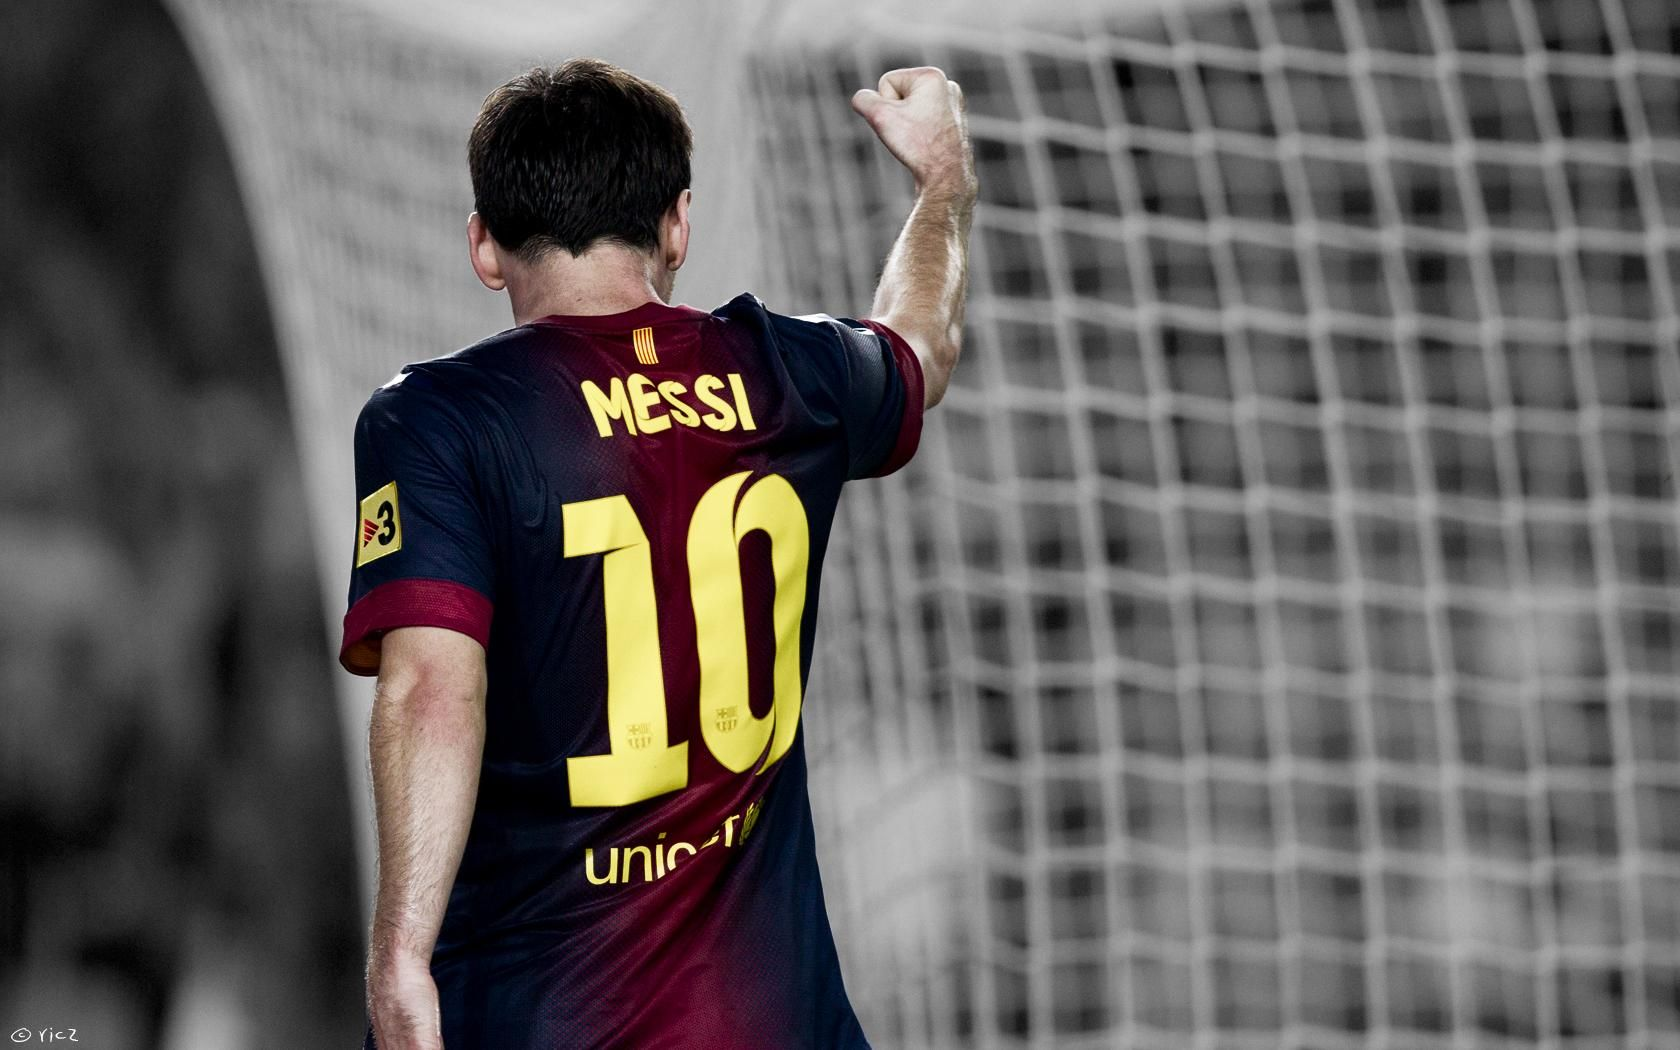 Sports Wallpapers Hd On Wallpaper 1080p Hd Sports Wallpapers Lionel Messi Sports Design